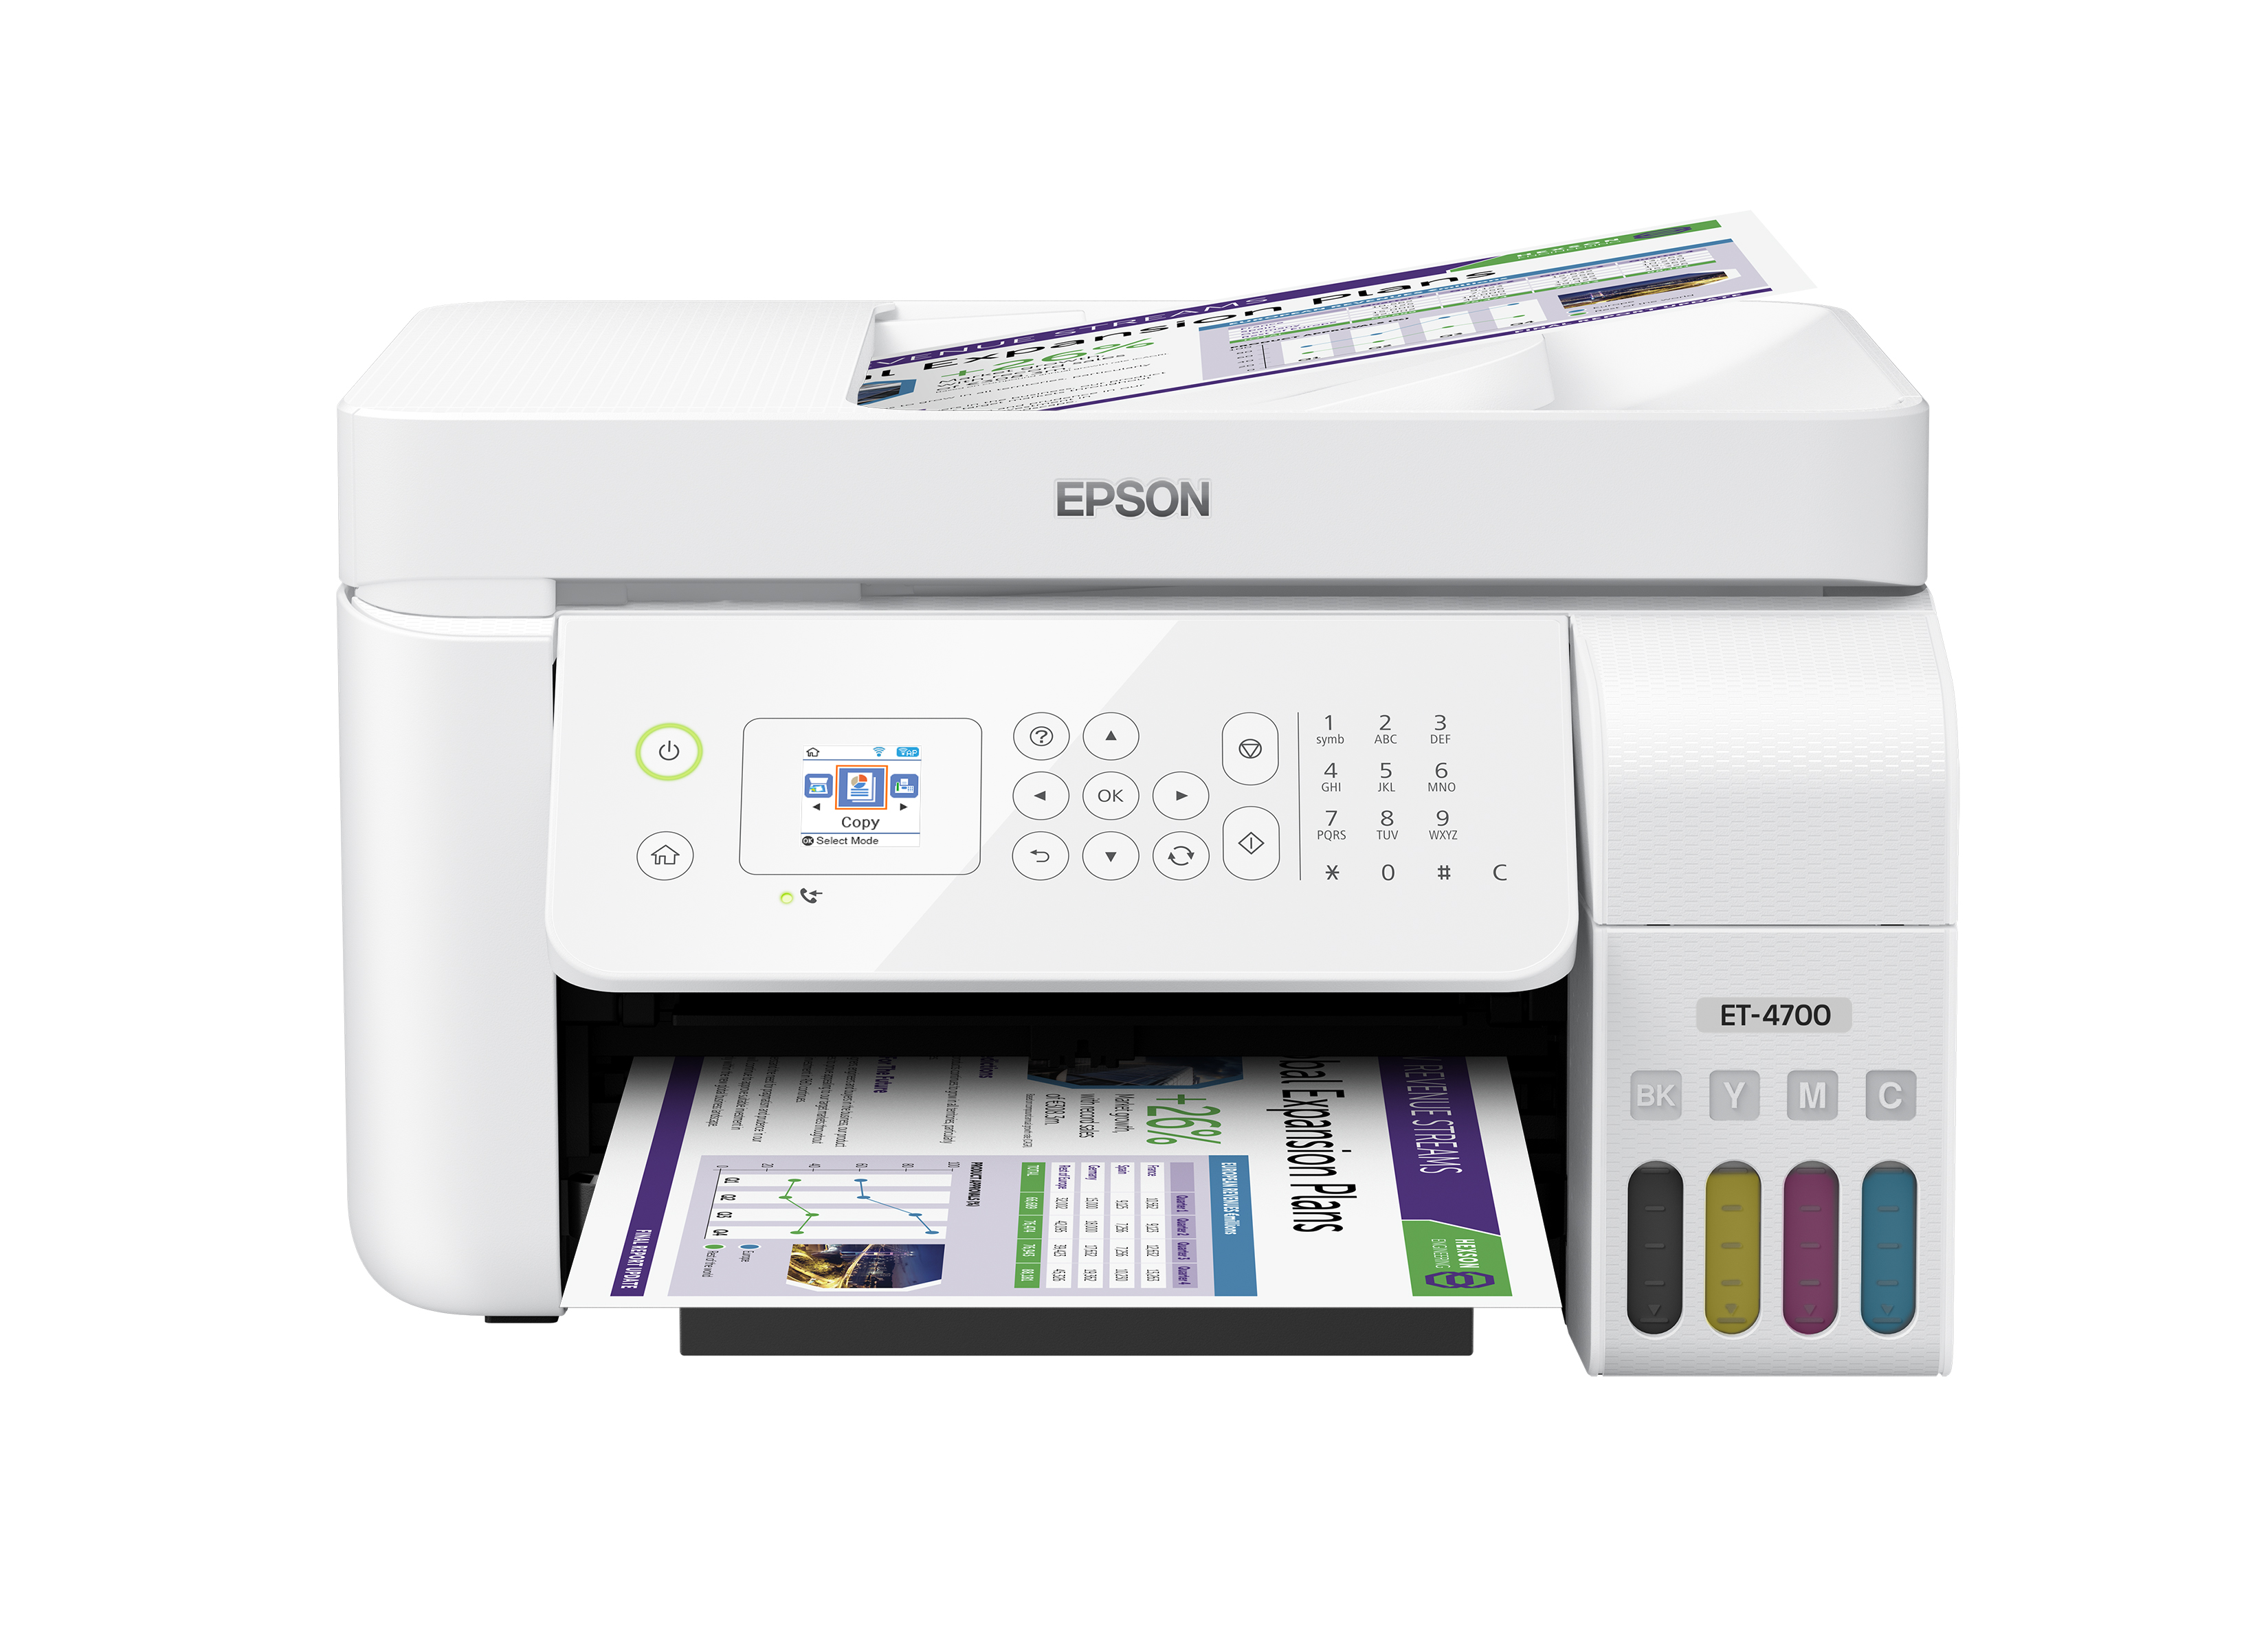 Epson EcoTank ET-4700 Wireless All-in-One Color Supertank Printer